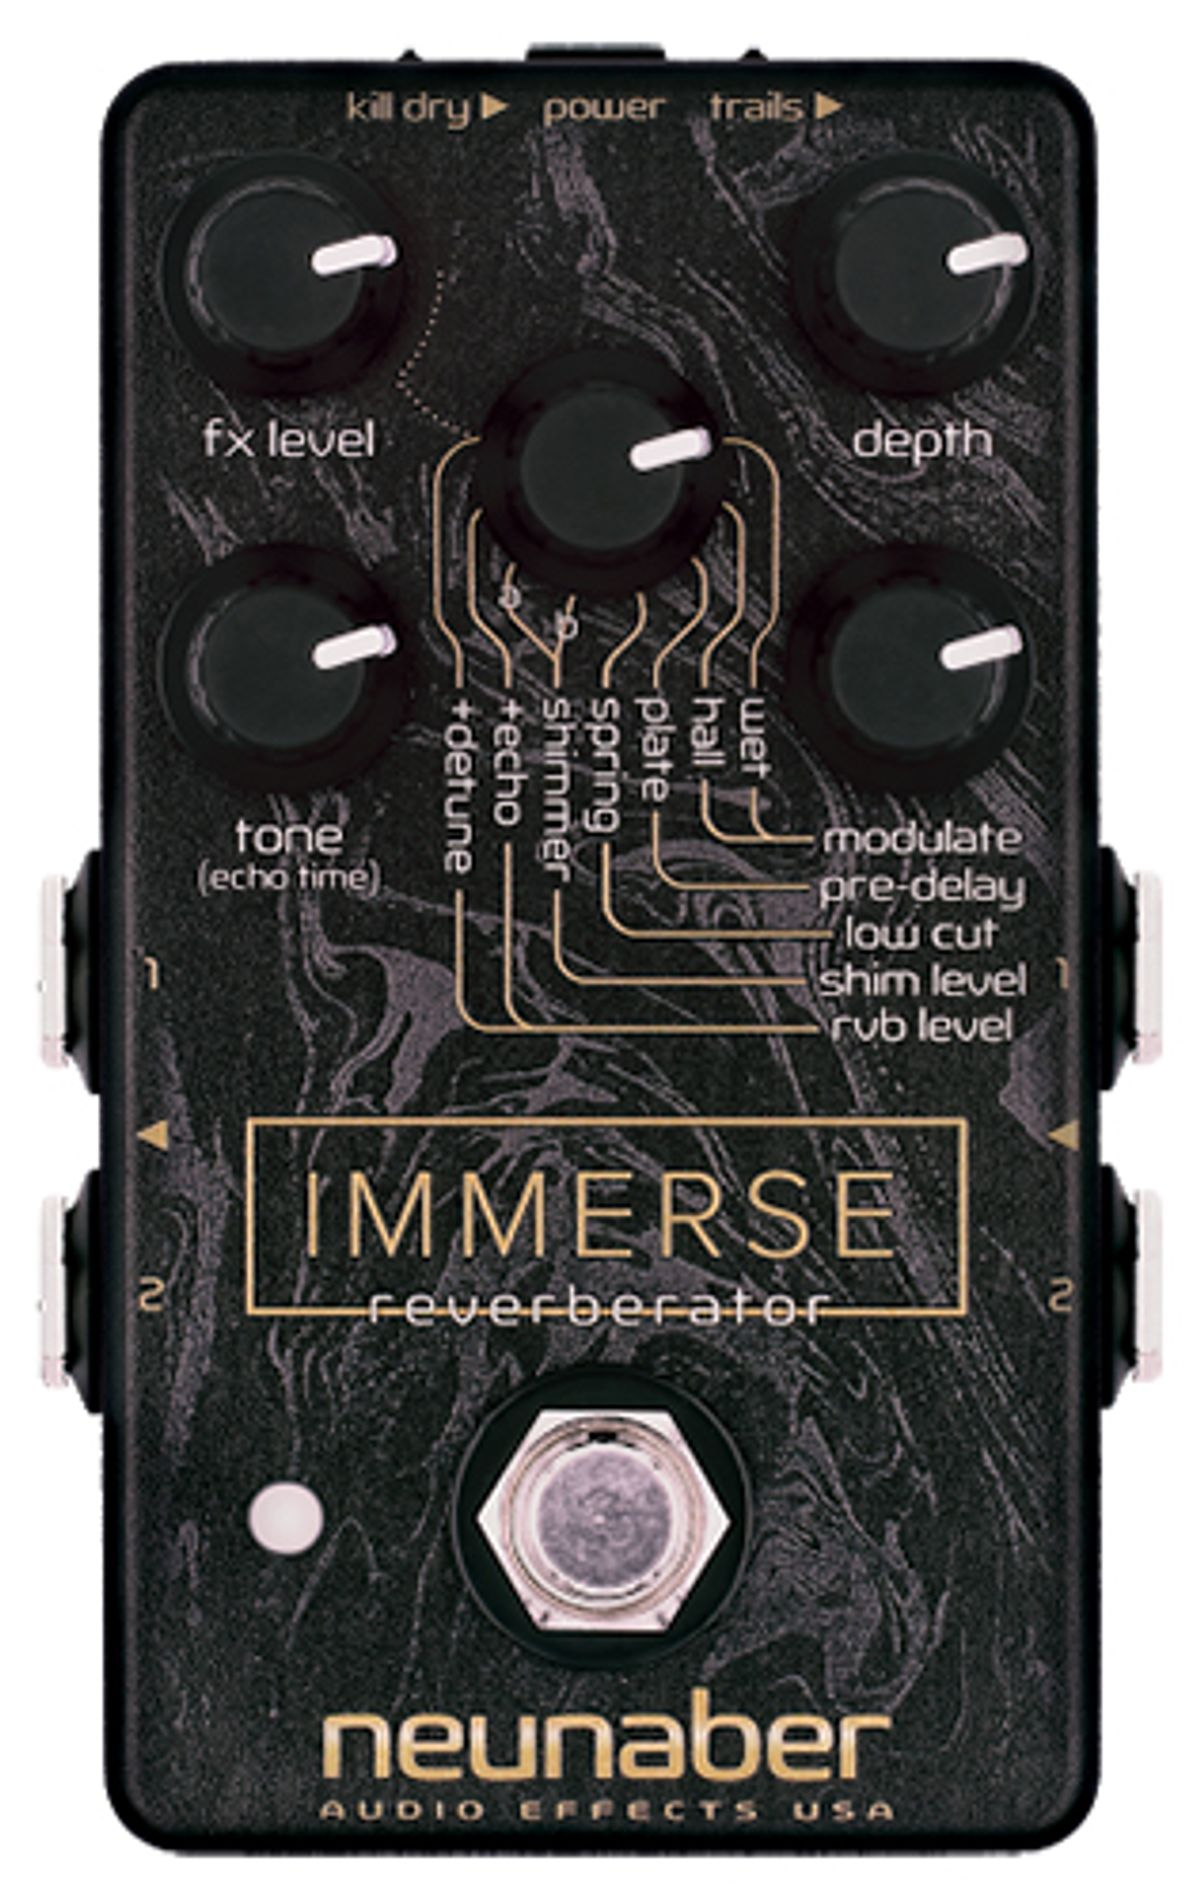 Neunaber Audio Effects Unveils the Immerse Reverberator